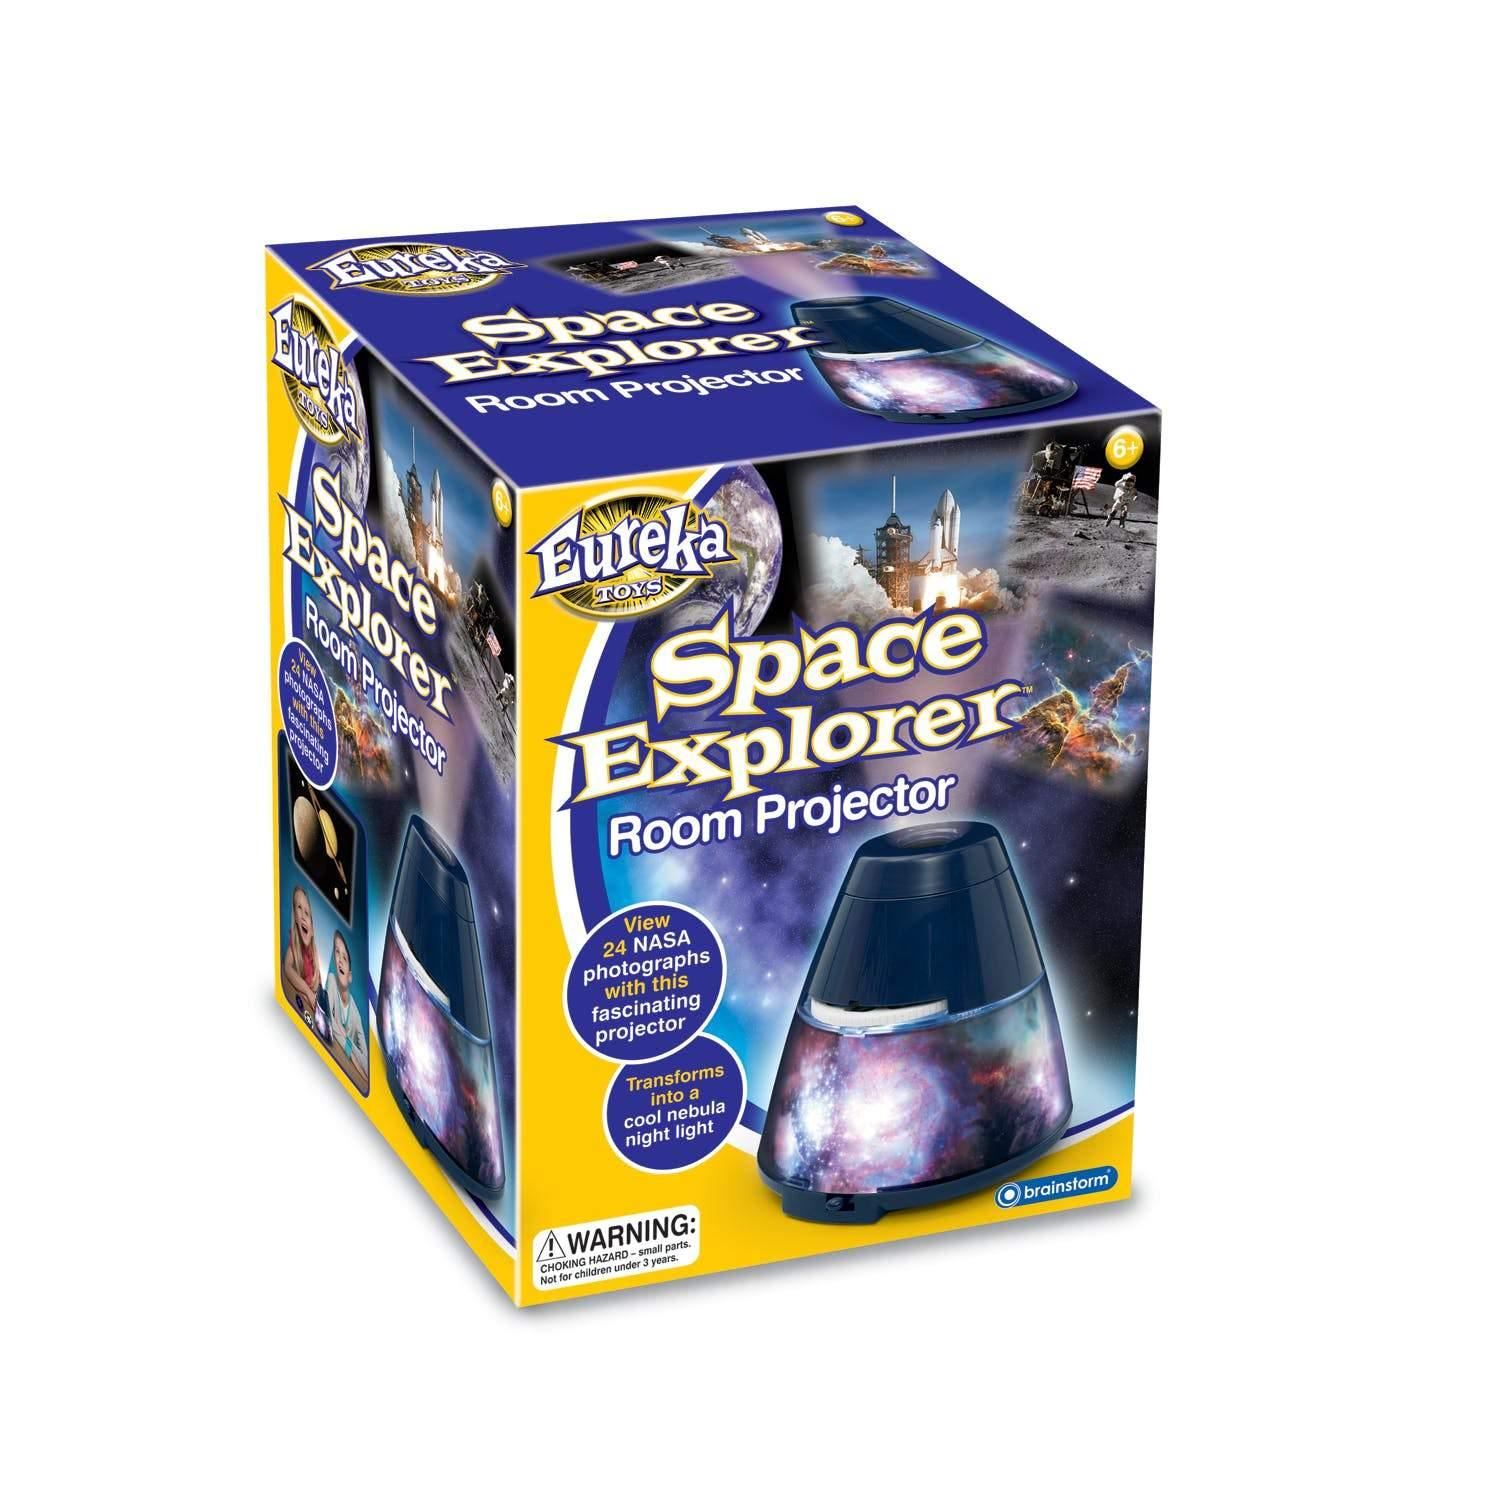 Eureka Space Explorer Room Projector